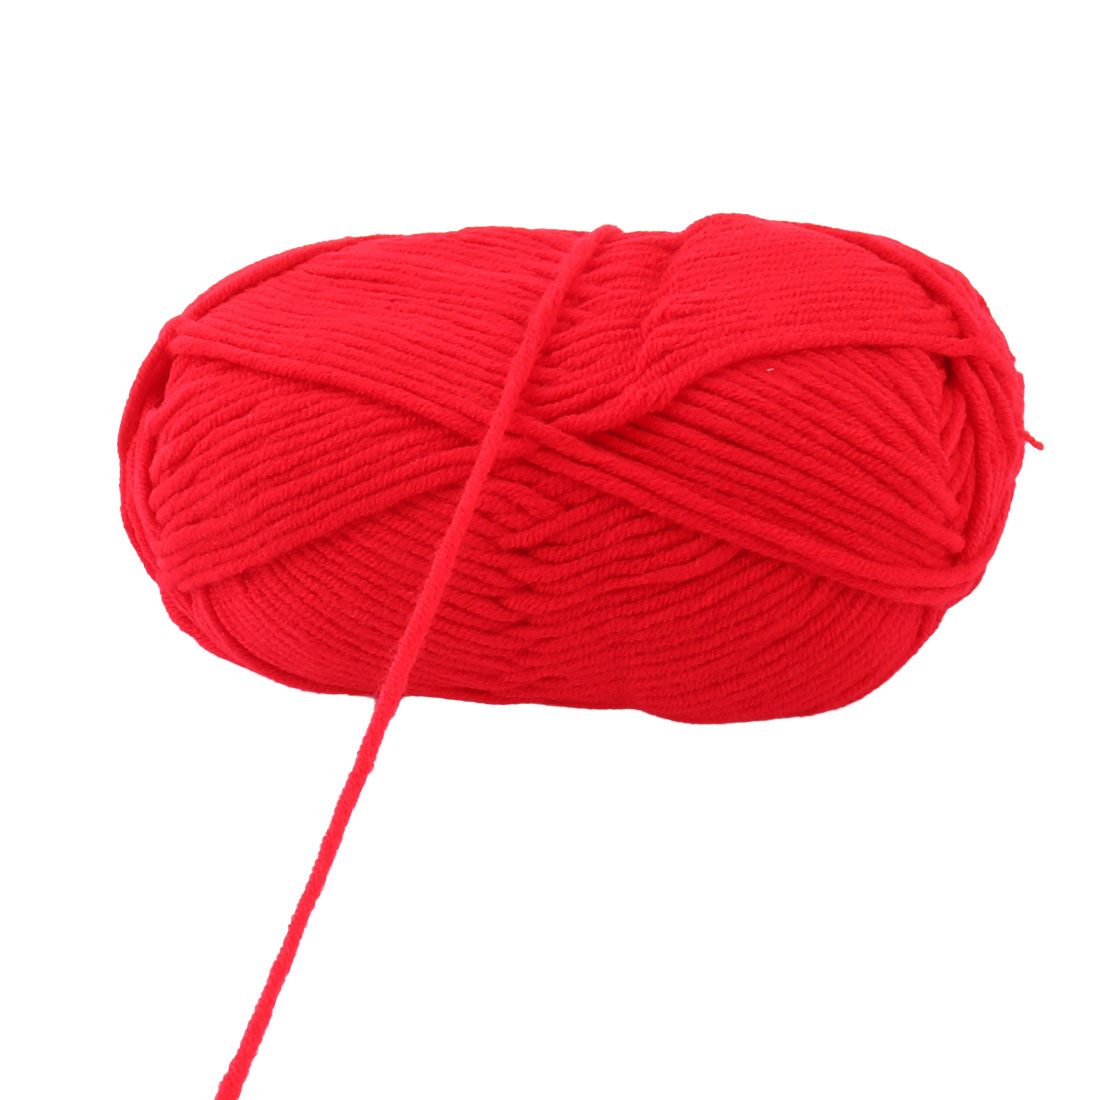 Cotton Blends Sweater Hat Gloves Crochet Knitting Yarn String Red 100g 2pcs - image 1 of 4